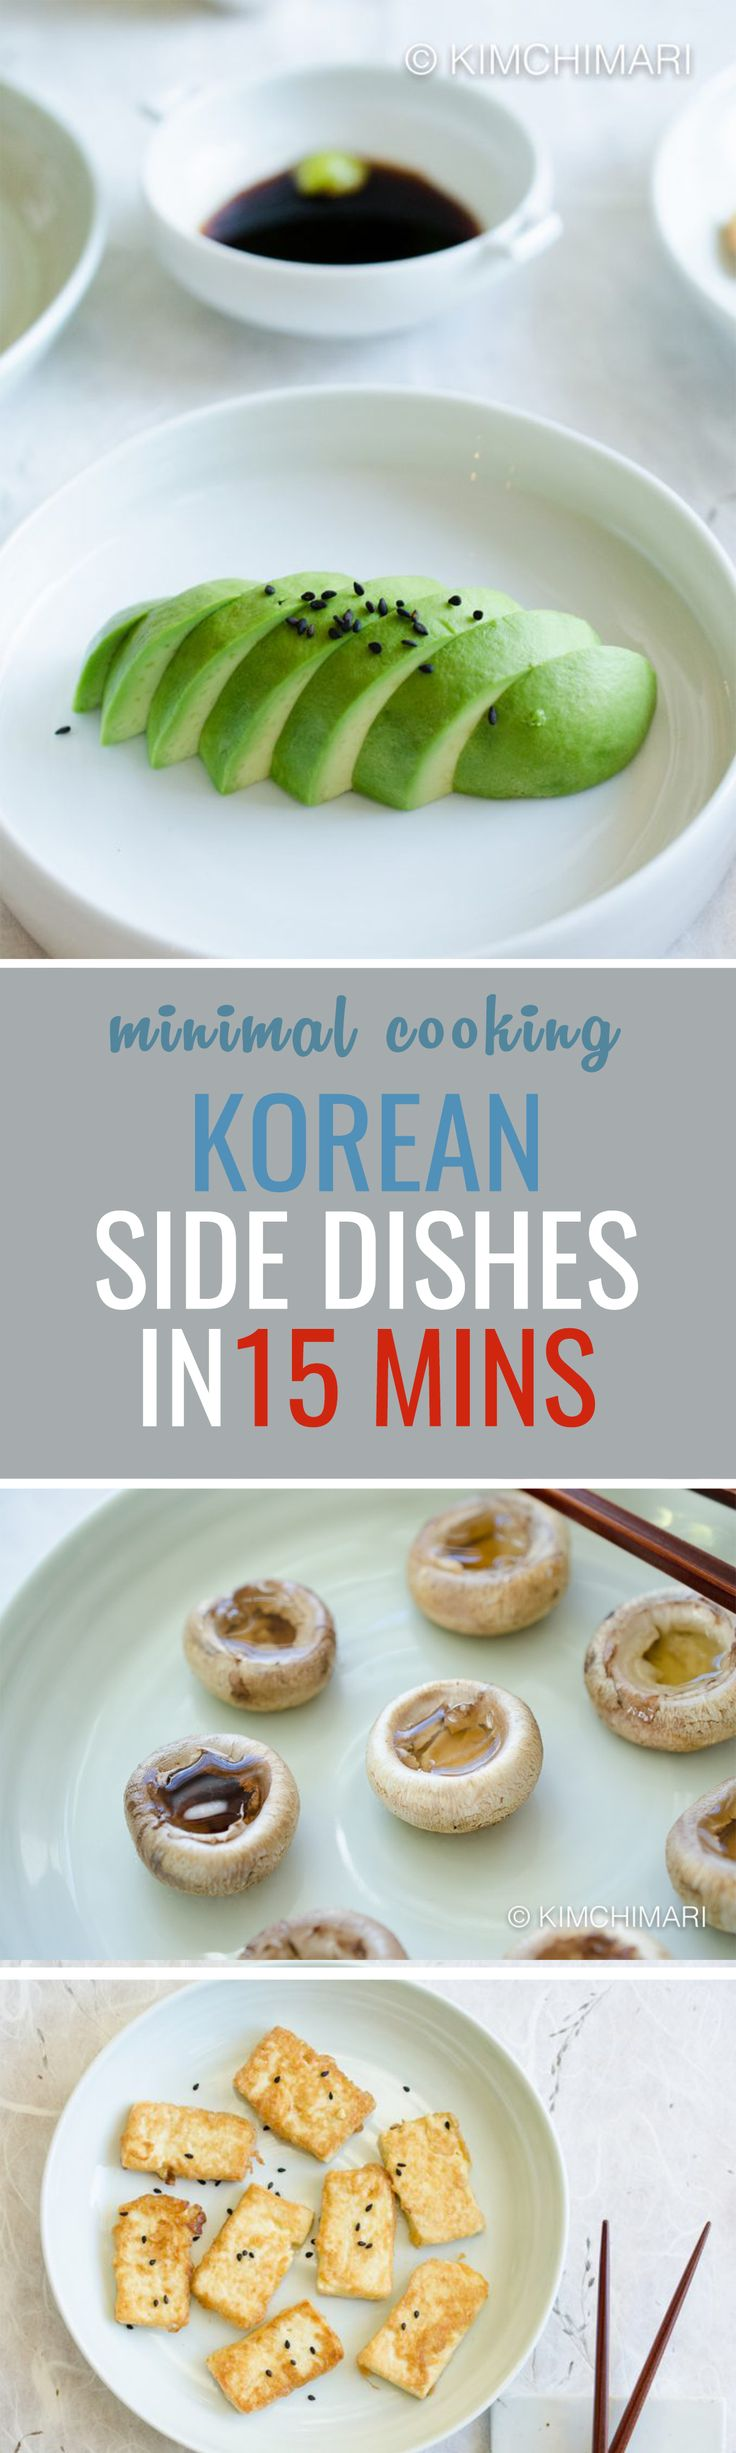 3 QUICK KOREAN SIDE DISHES IN UNDER 15 MINUTES!! Individually, each dish only takes 5 to 10 minutes. And they all go great with any Korean meal!!